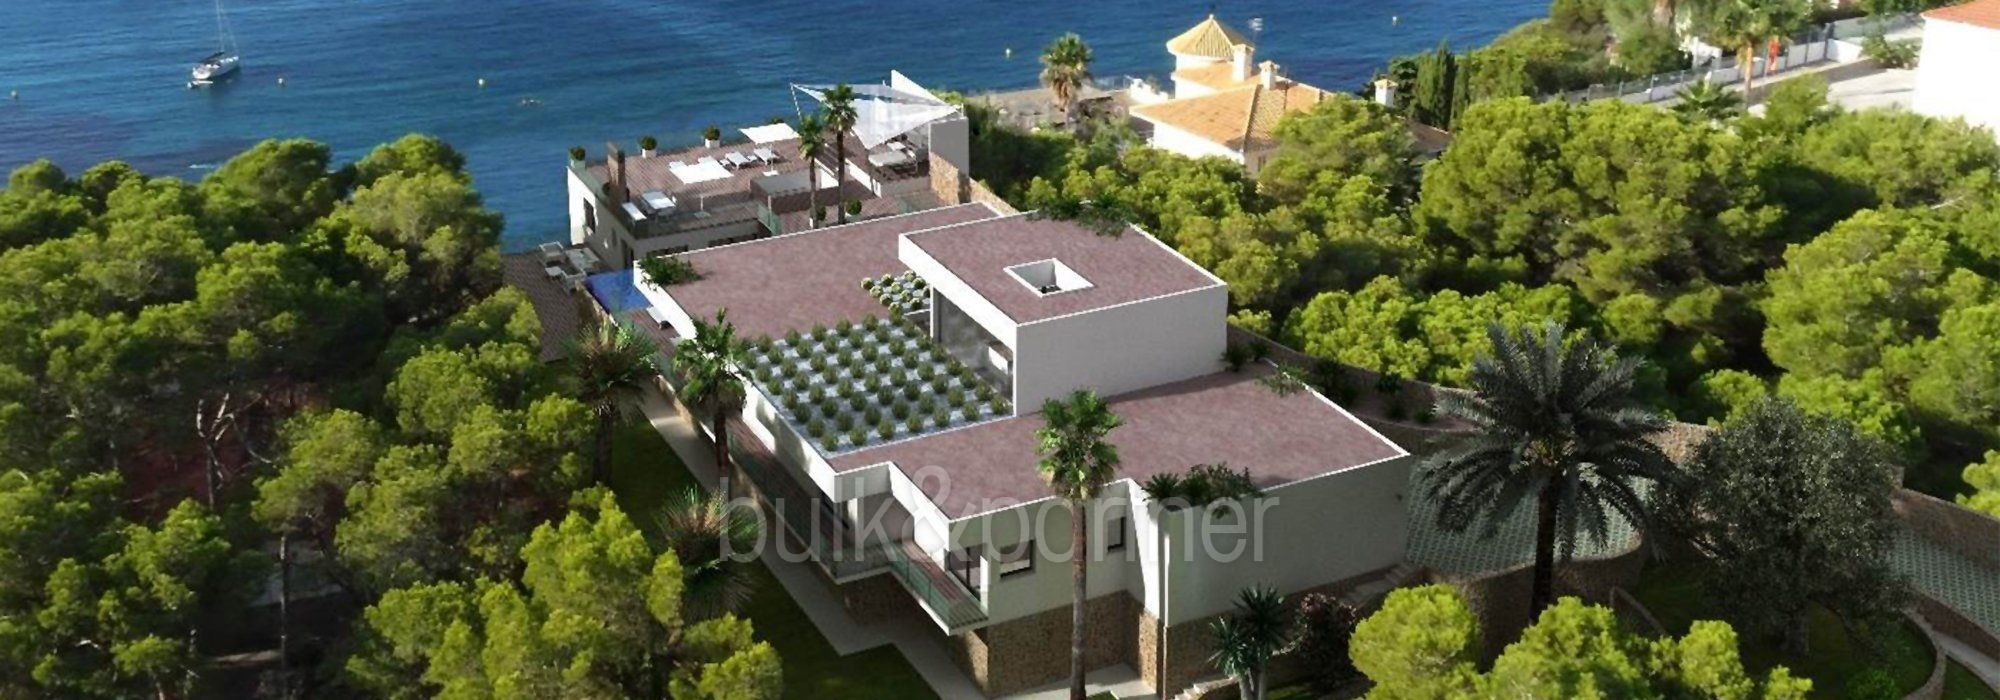 New build sea front luxuy villa in Moraira